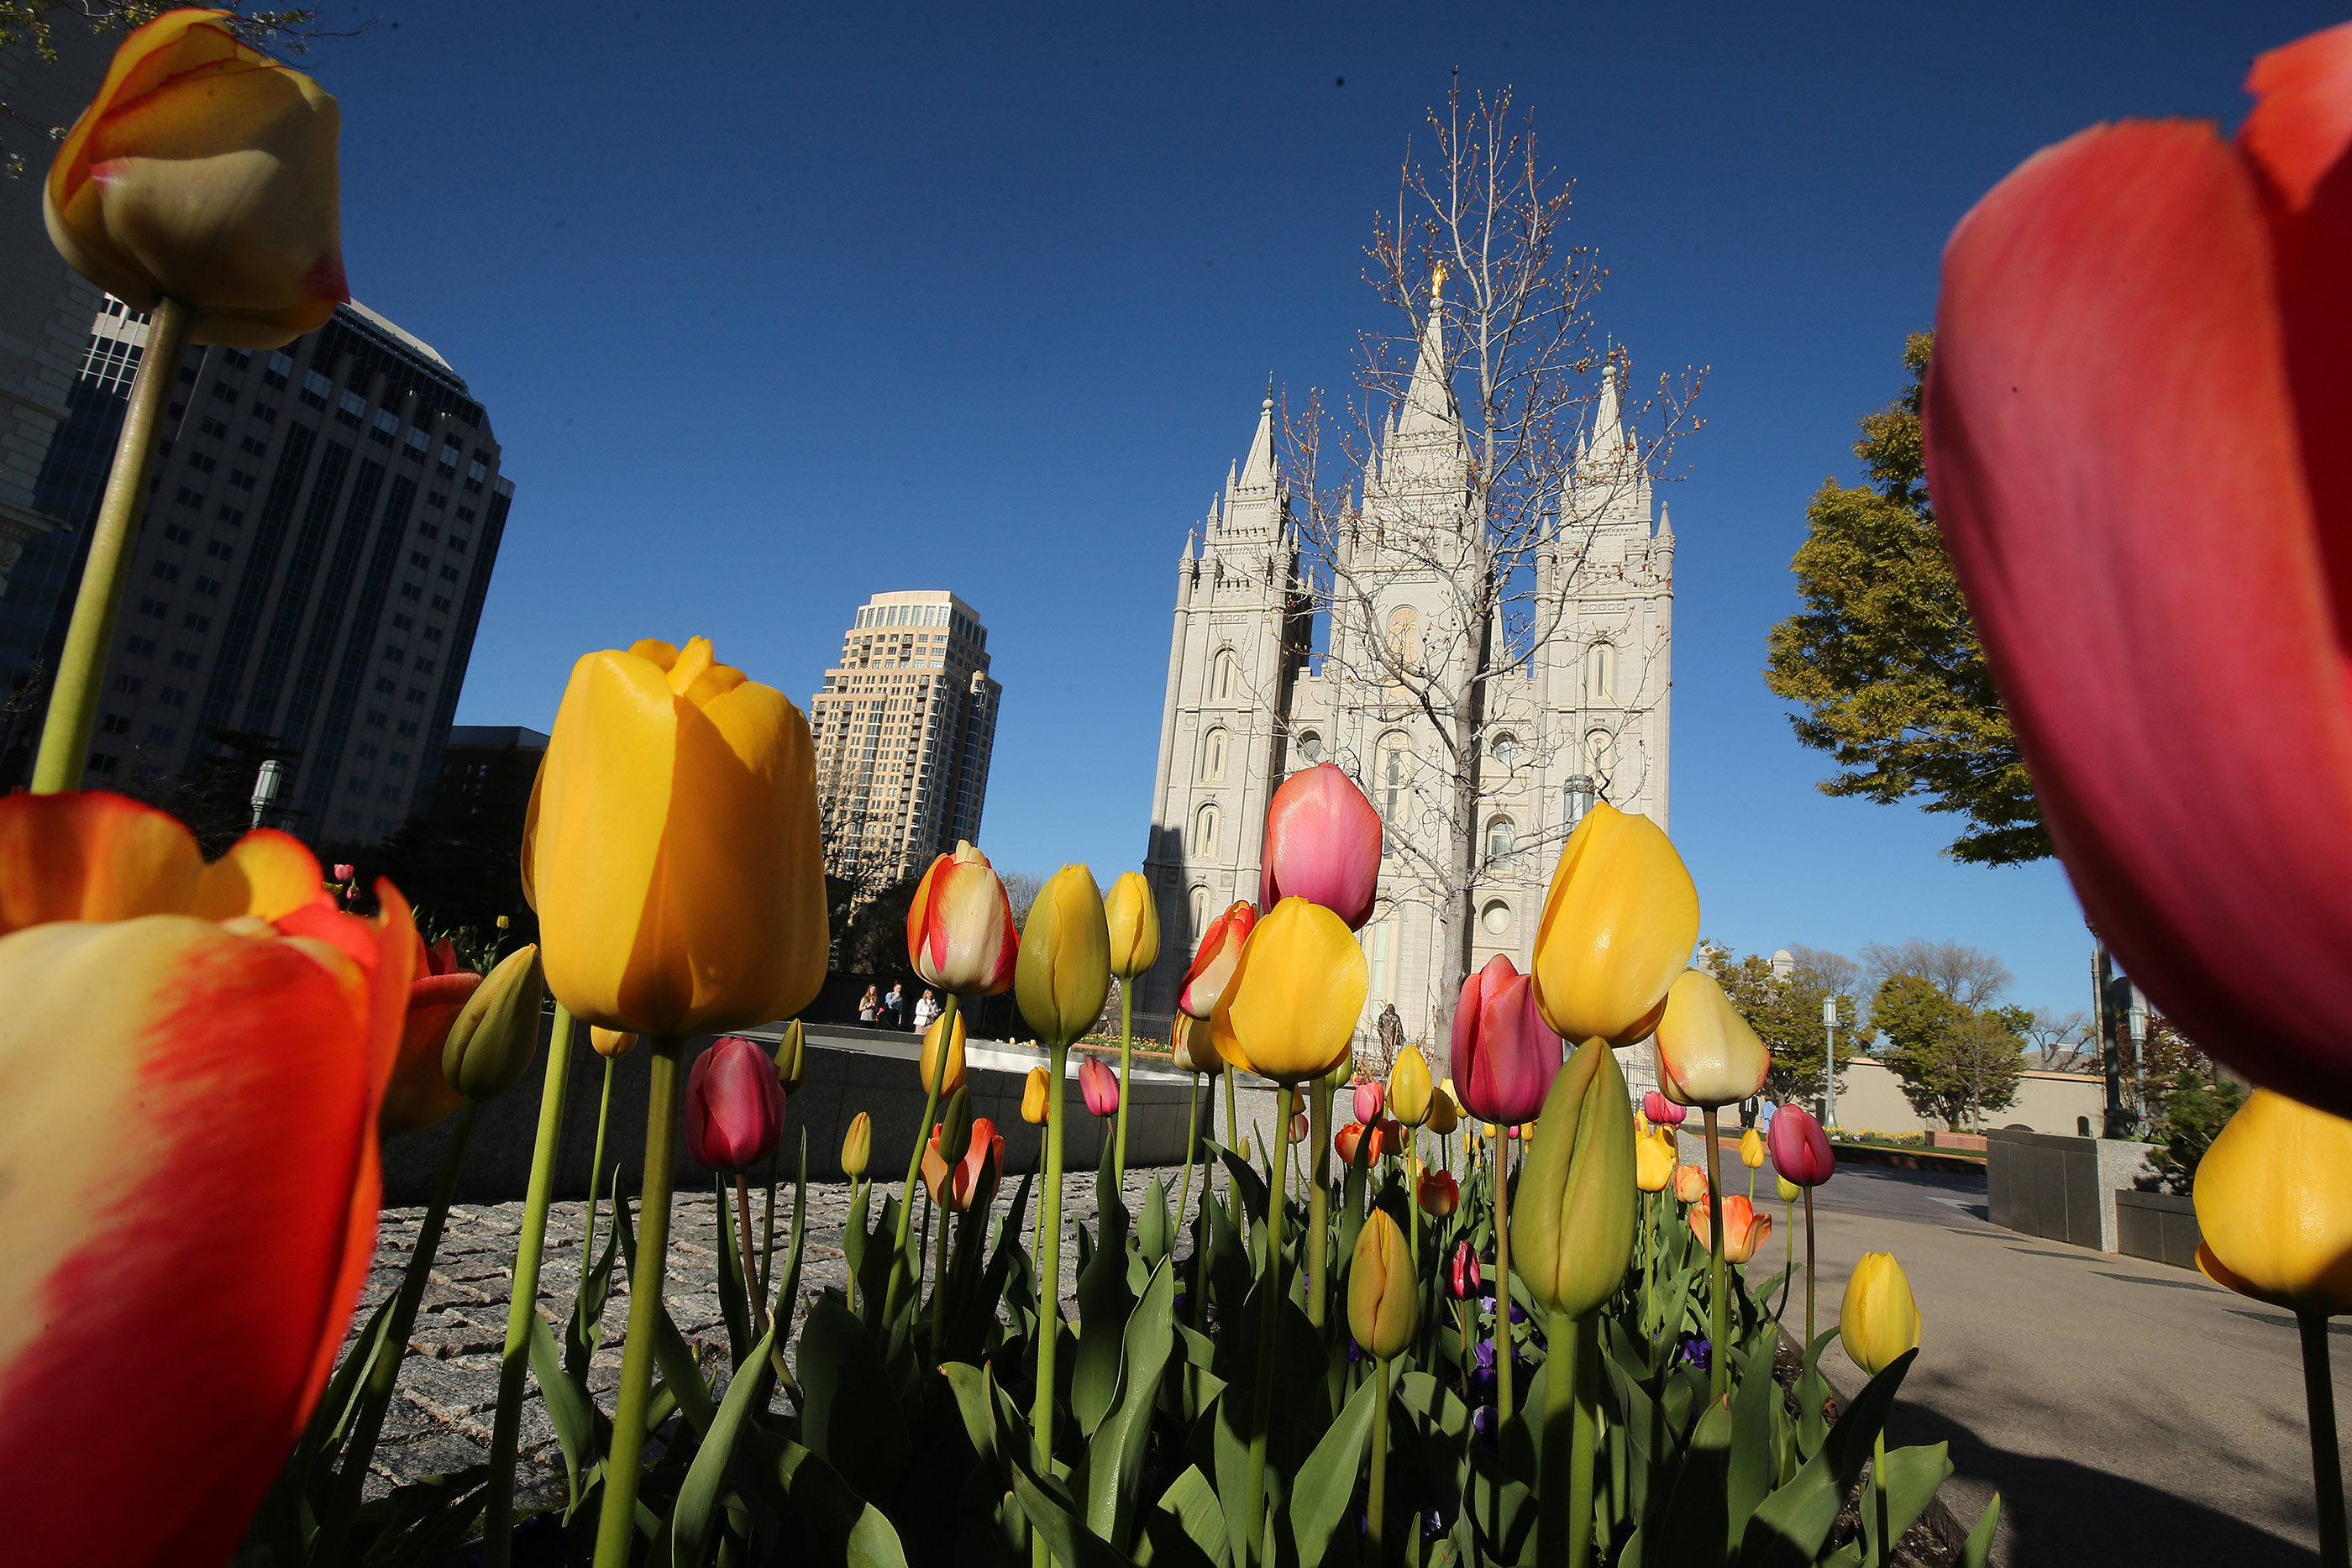 Flowers adorn the grounds of the Salt Lake Temple in Salt Lake City on Friday, April 19, 2019. Leadership of The Church of Jesus Christ of Latter-day Saints announced renovation plans for the Salt Lake Temple and changes to the temple grounds and Temple Square.